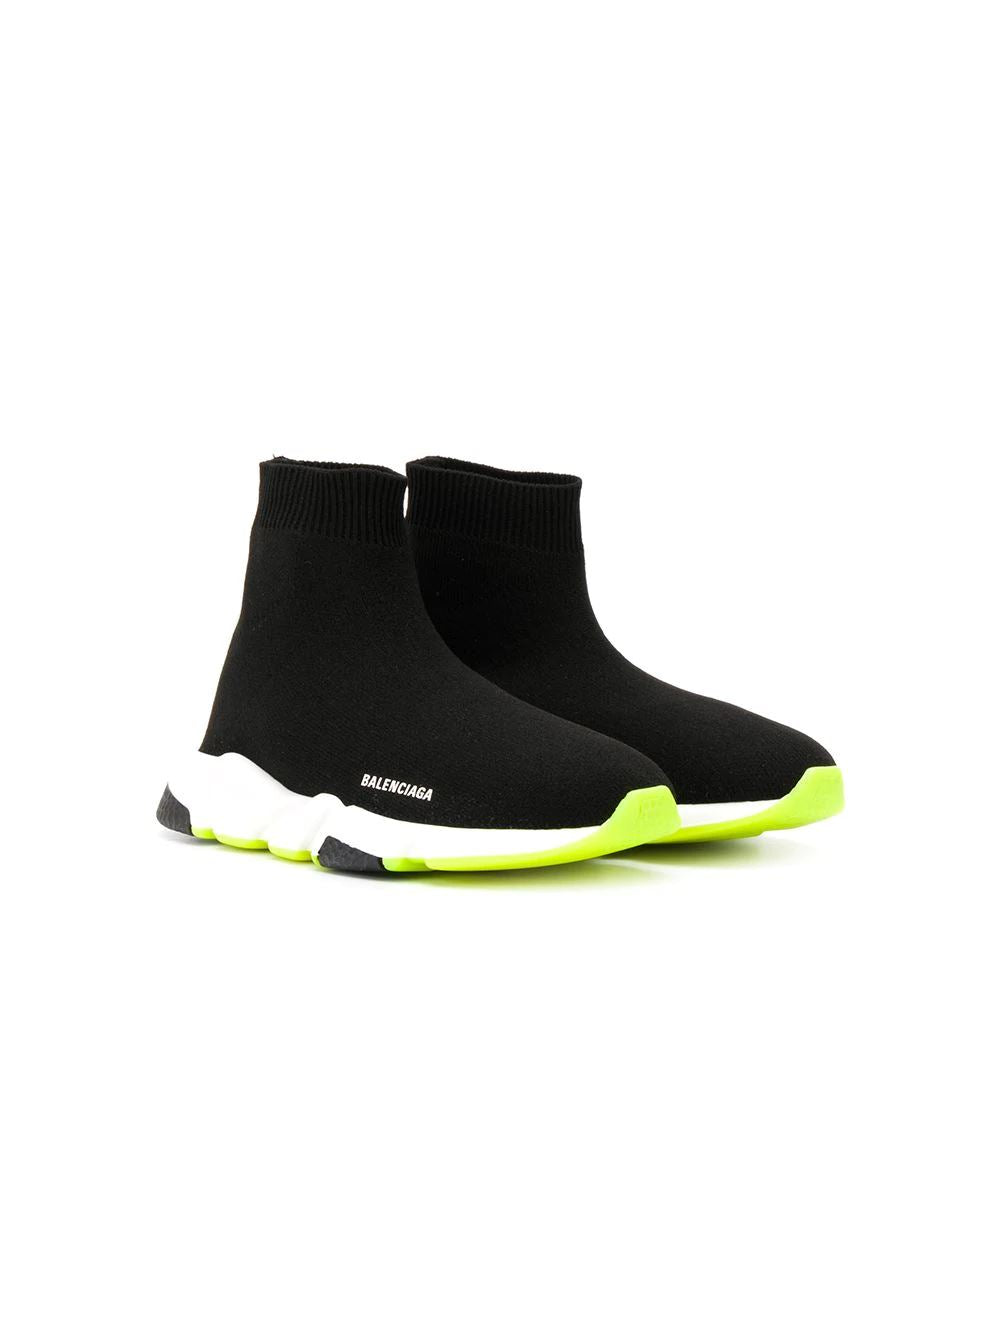 Balenciaga kids speed runner black/fluo - Maison De Fashion